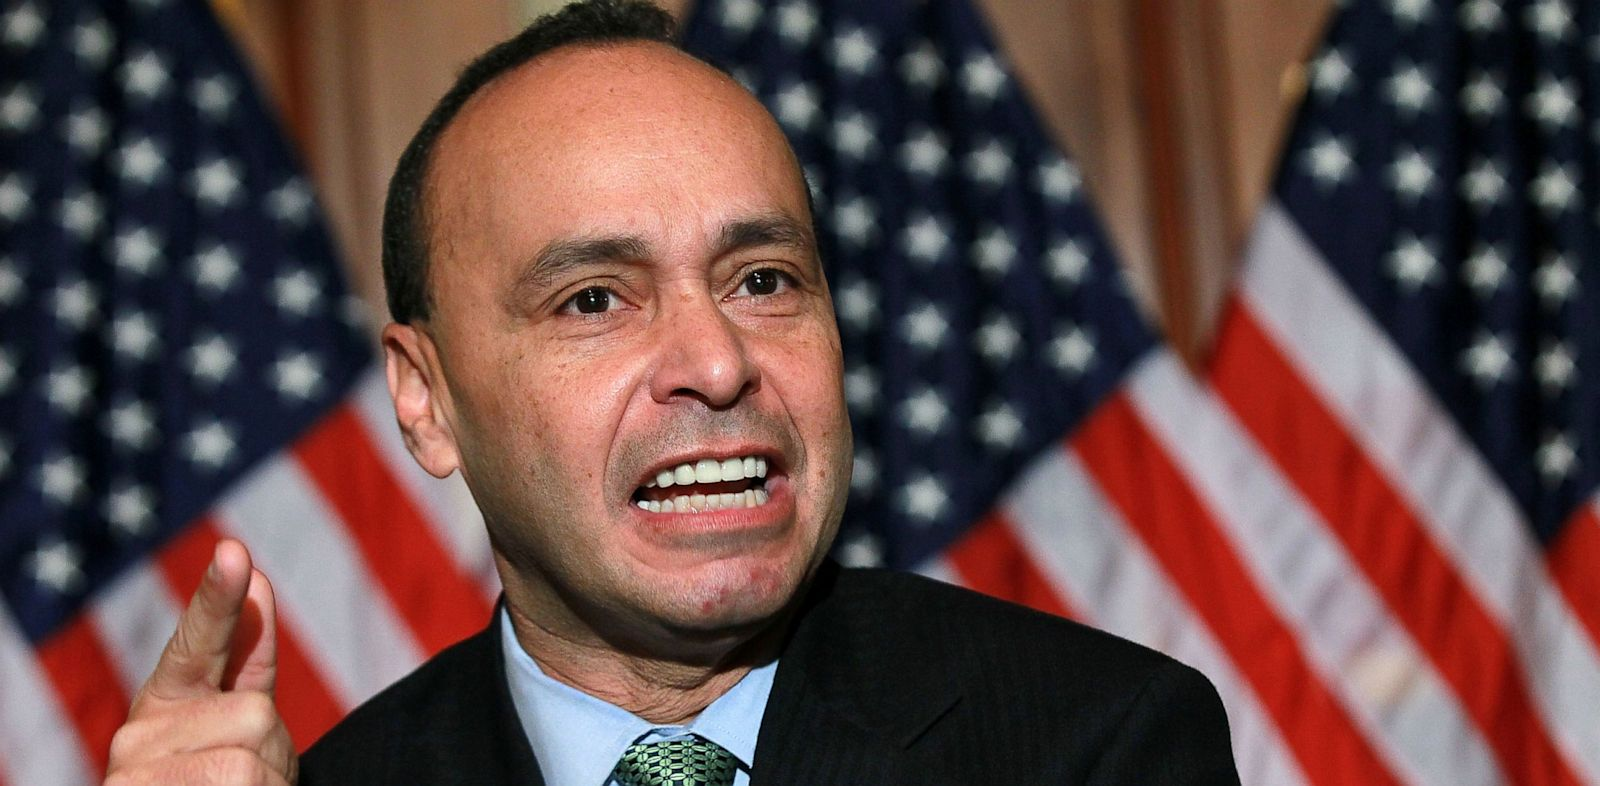 PHOTO: U.S. Rep. Luis Gutierrez (D-IL) speaks during a news conference on the Development, Relief and Education for Alien Minors Act on Capitol Hill December 8, 2010 in Washington, DC.